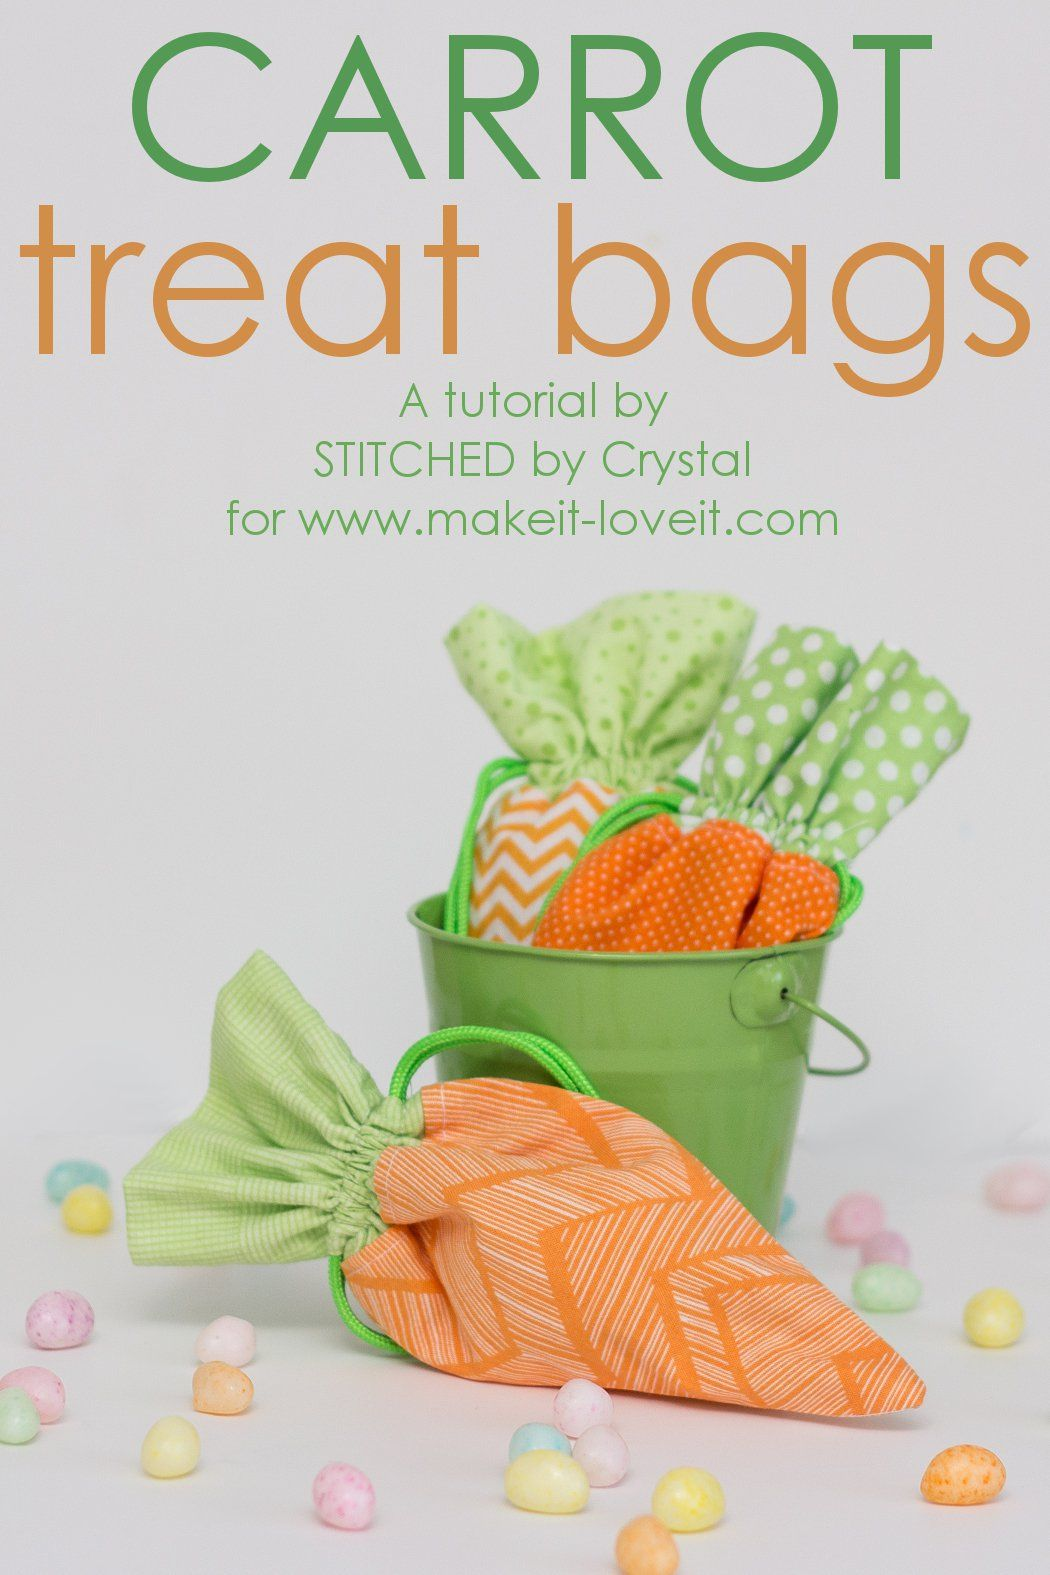 A tutorial to make a carrot treat bag that can be filled with candy for Easter.